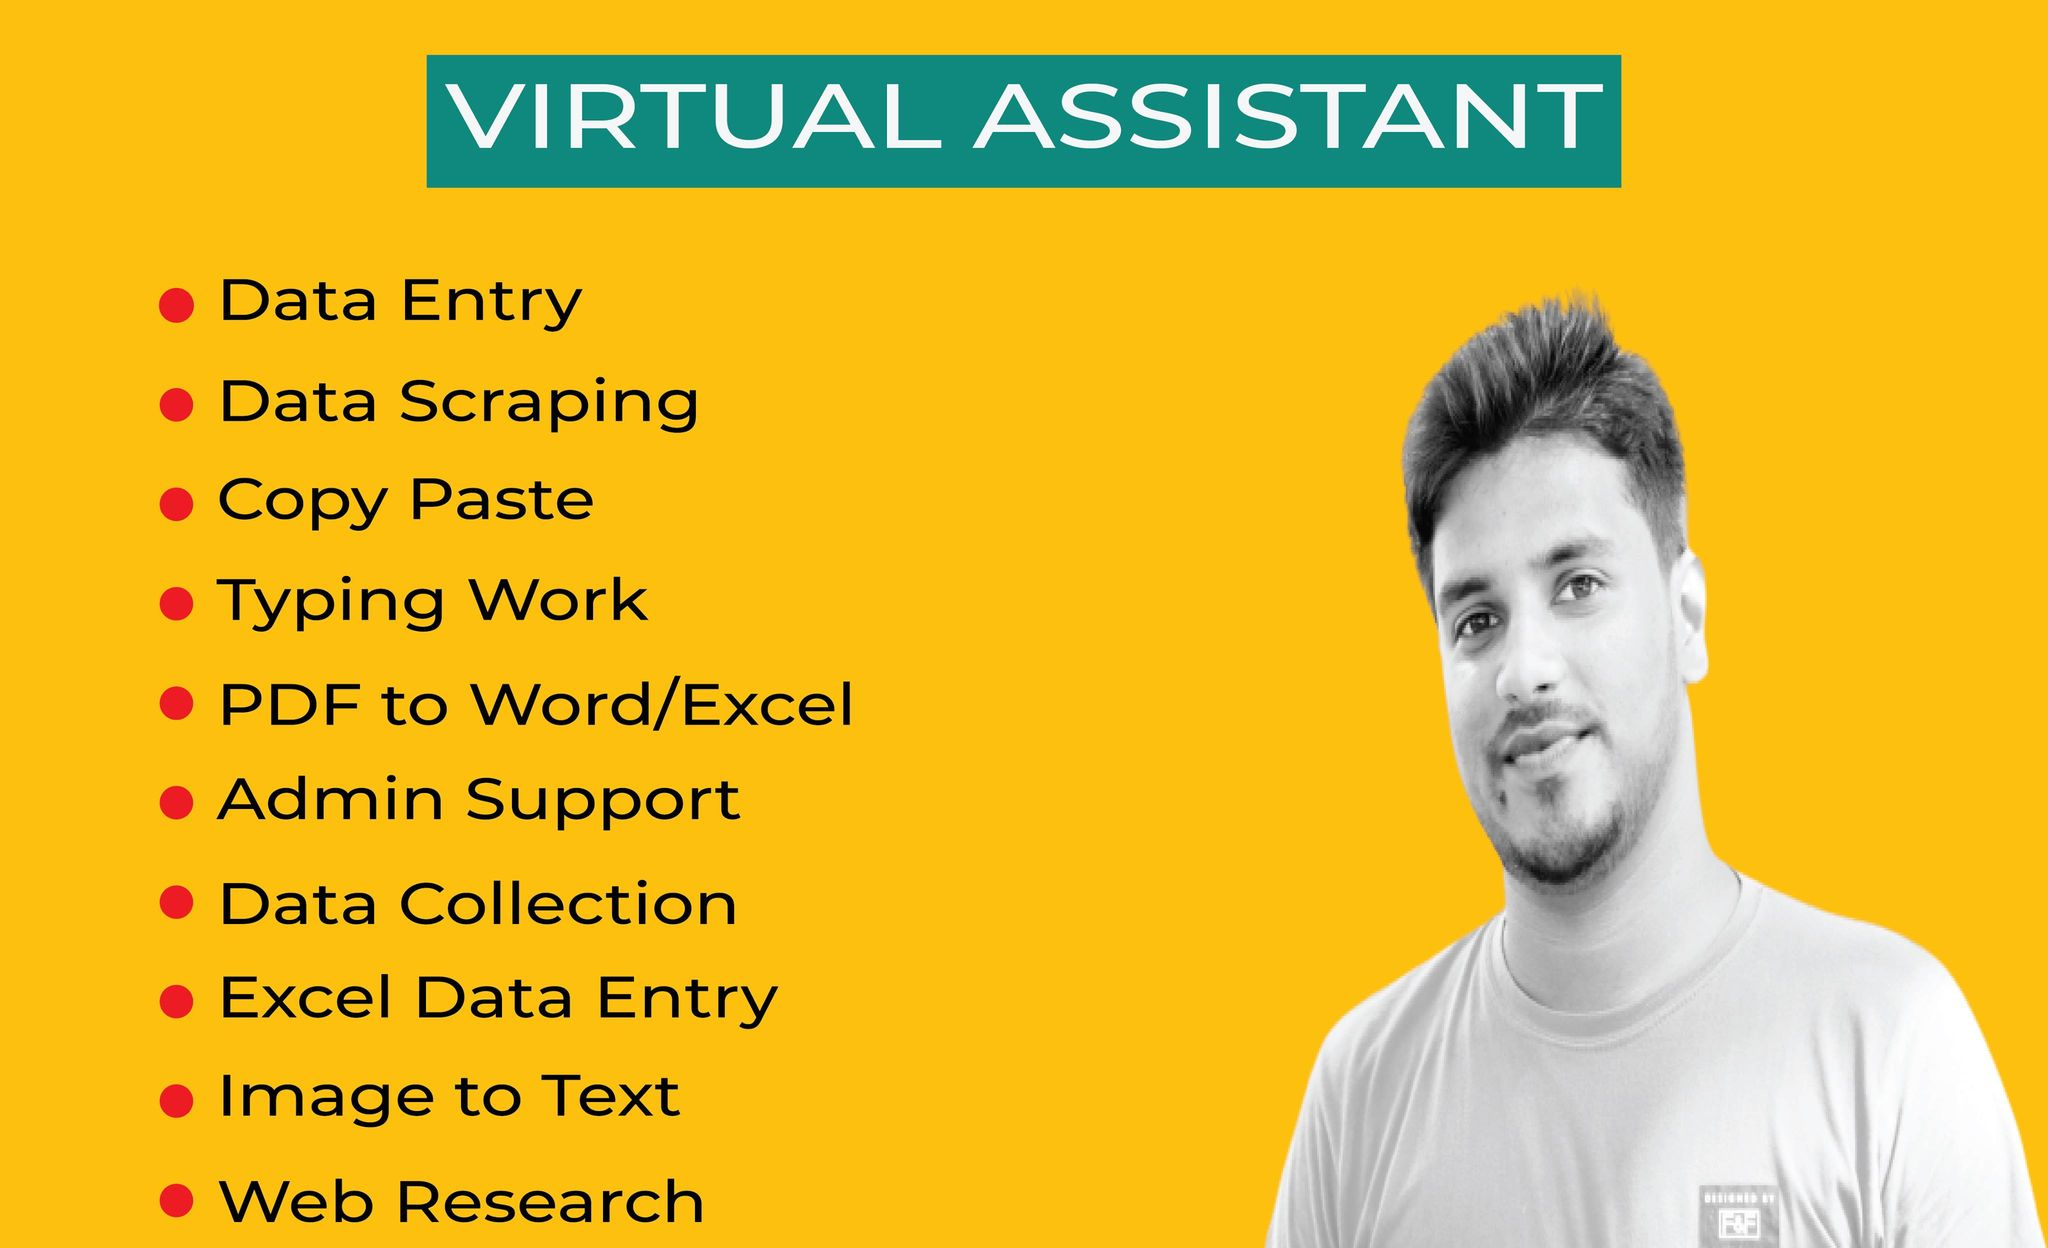 do any virtual assistant,  copy paste and data entry job